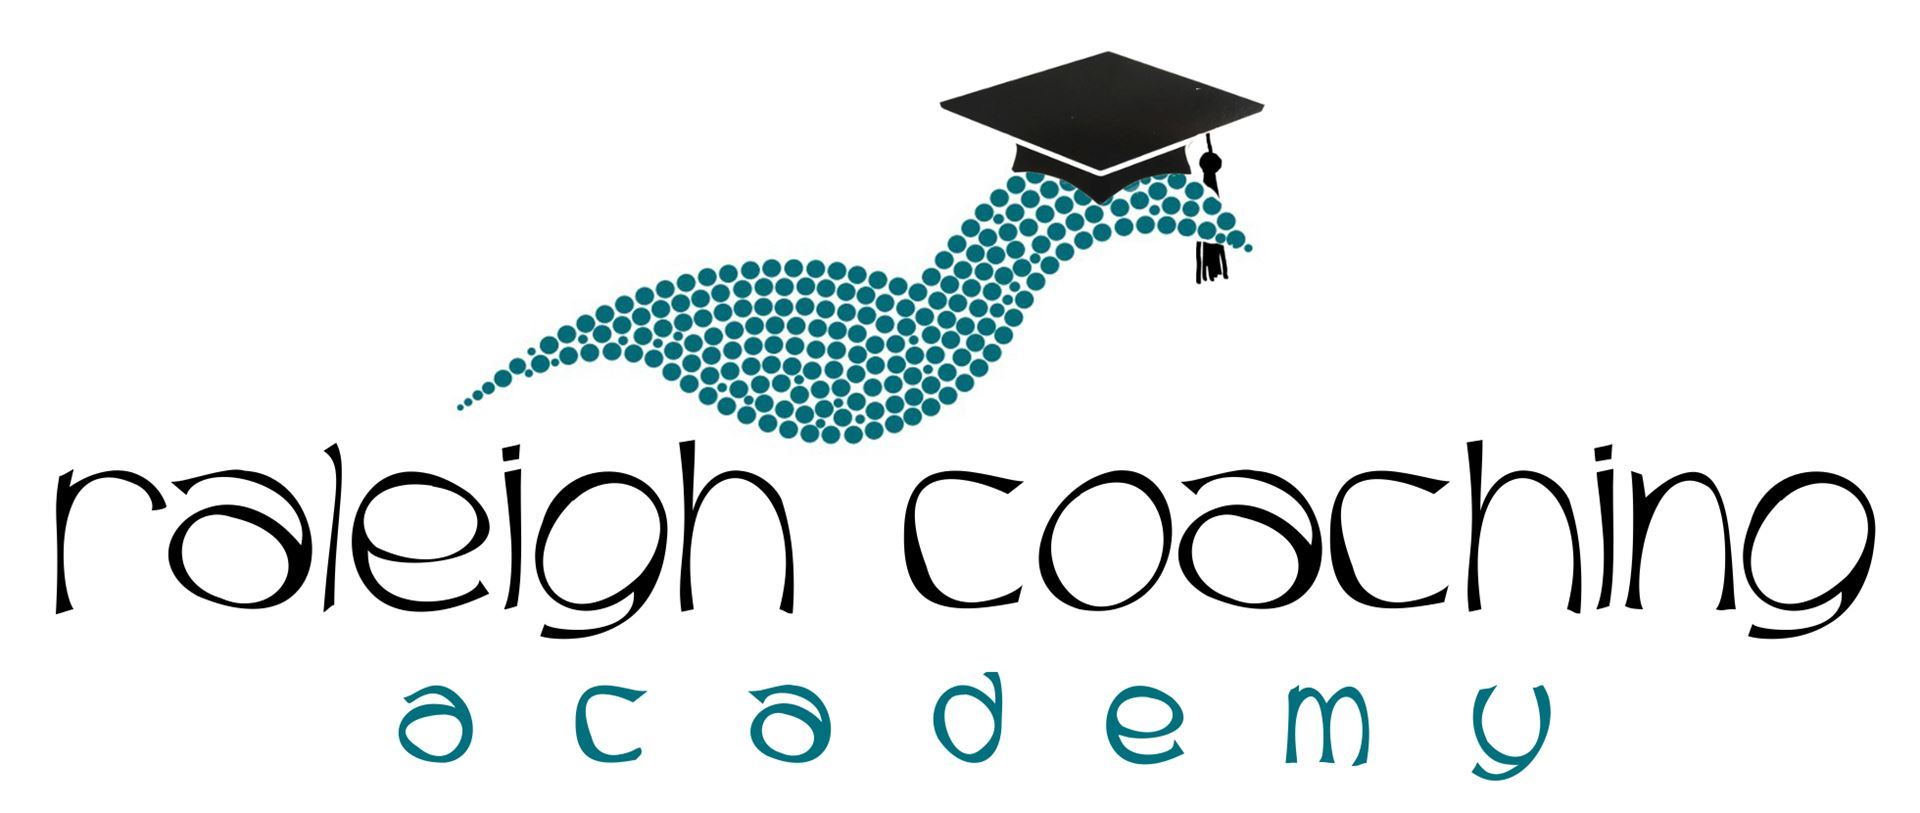 Raleigh Coaching Academy Site